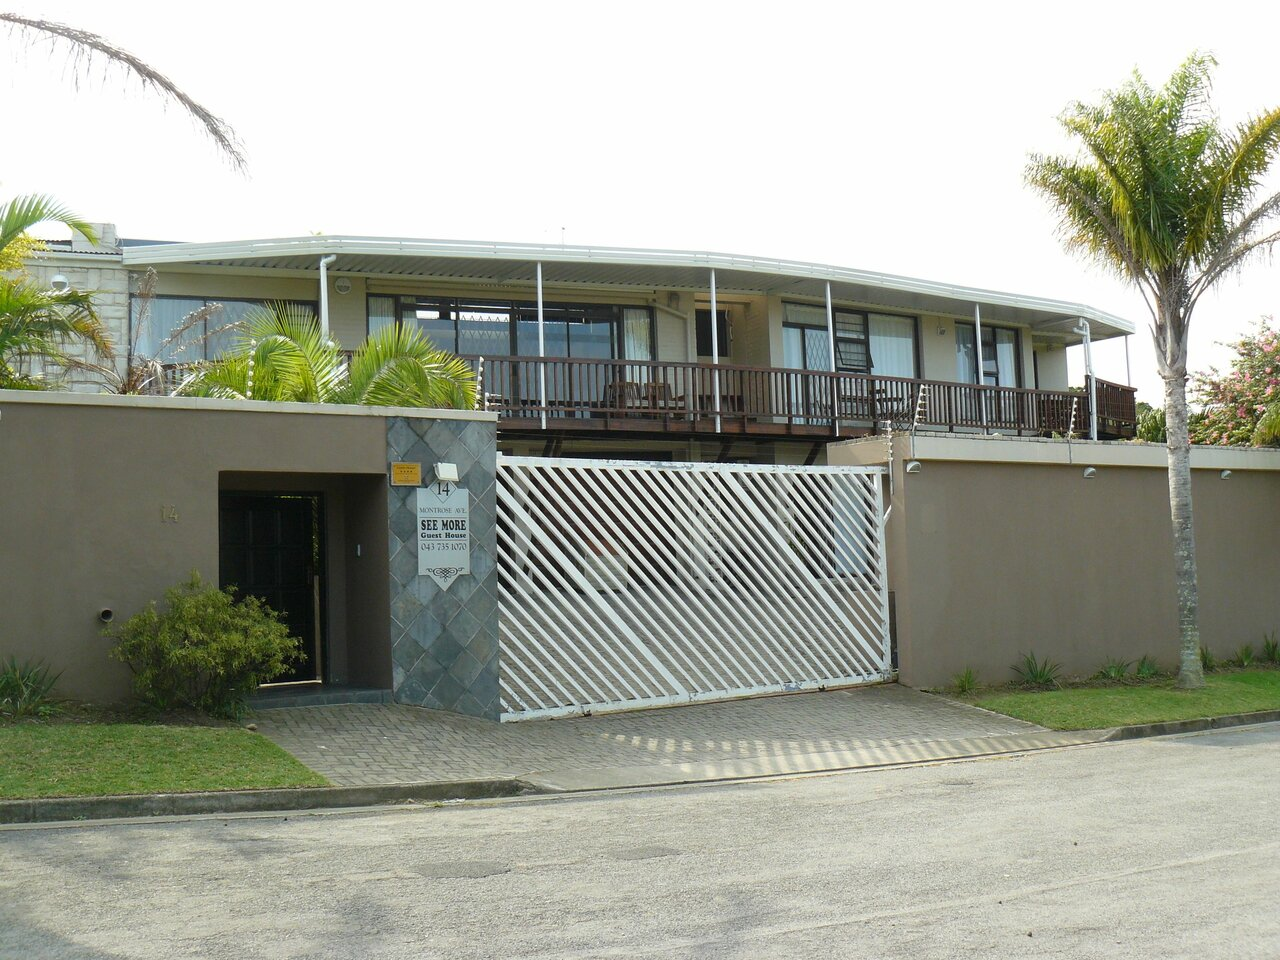 See-more Guest House